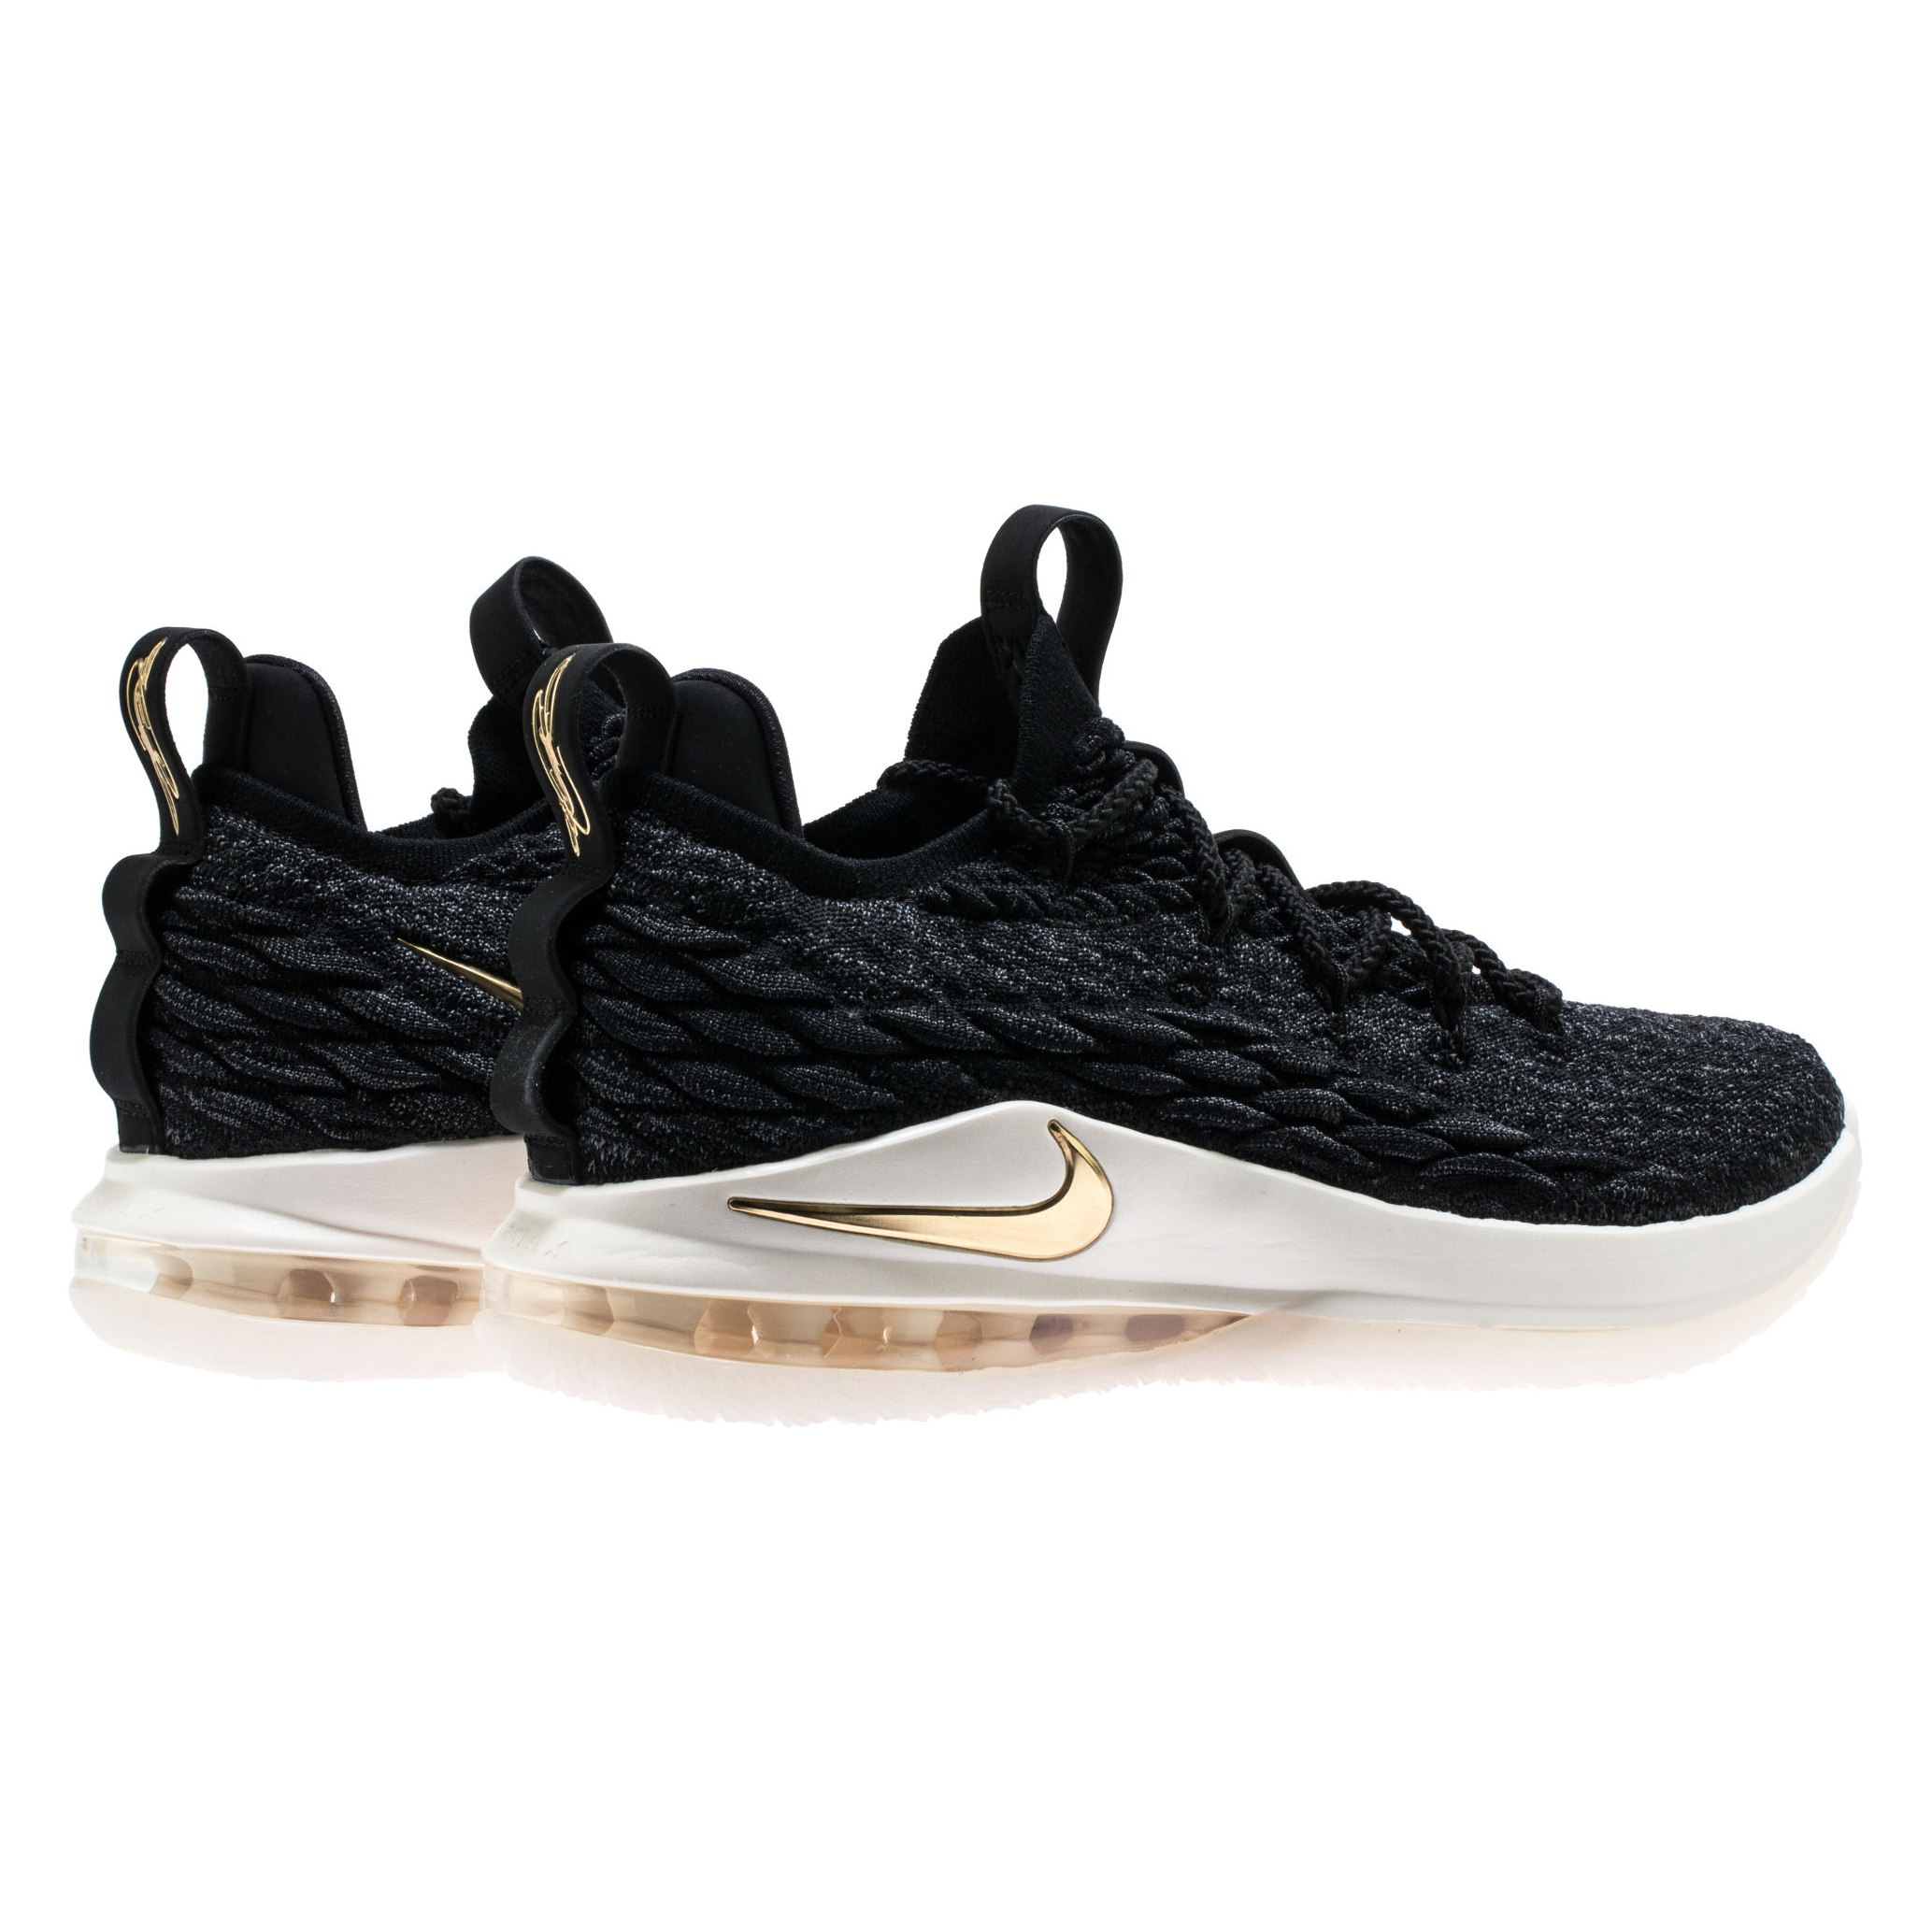 Two Nike LeBron 15 Low Colorways Will